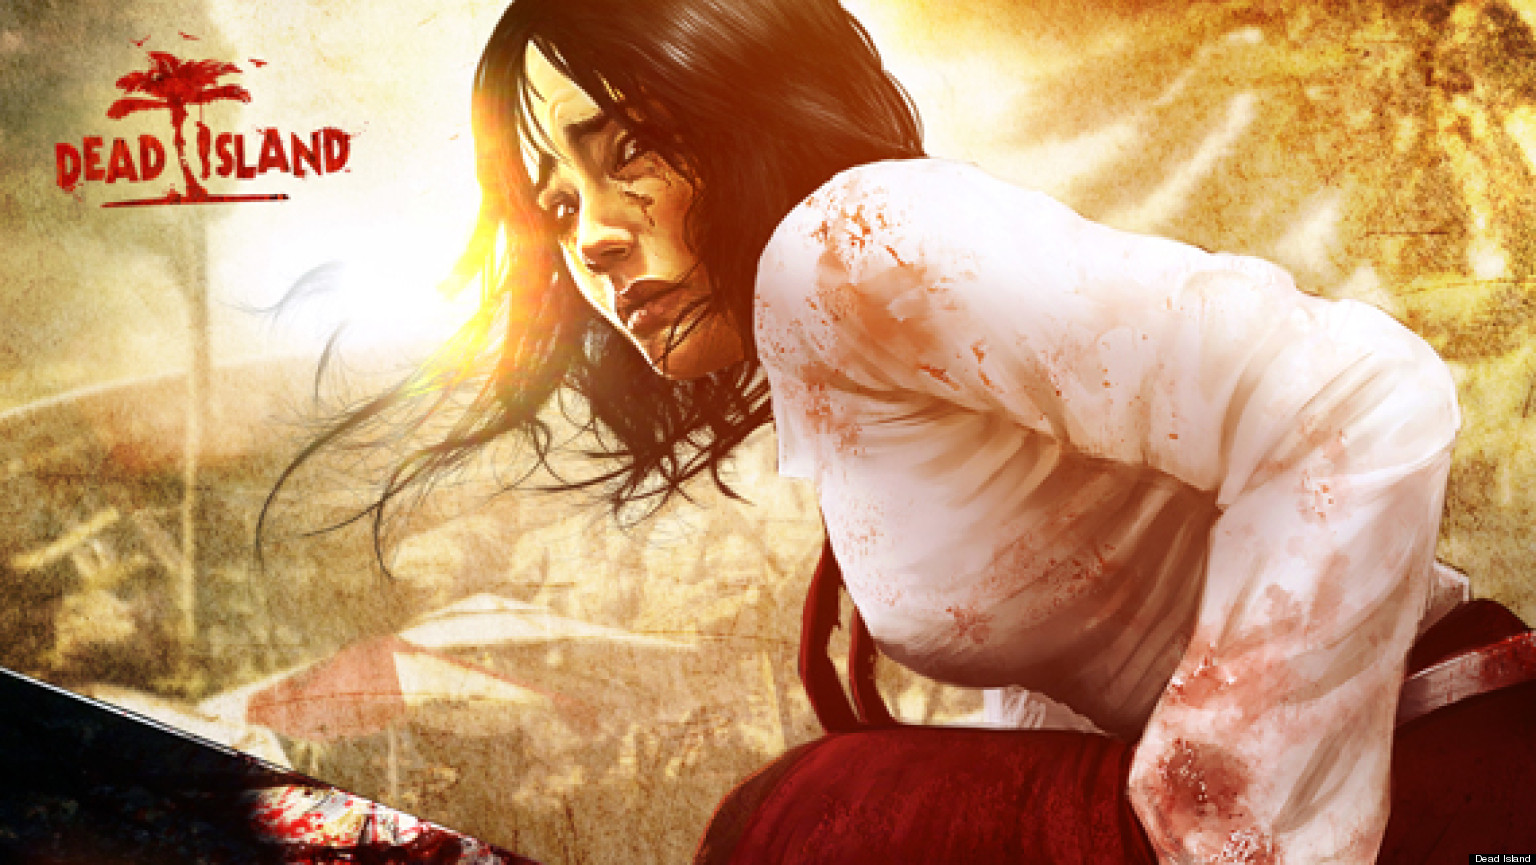 Dead Island Riptide Special Edition Astonishingly Stupid Game Comes With Bloody Dismembered